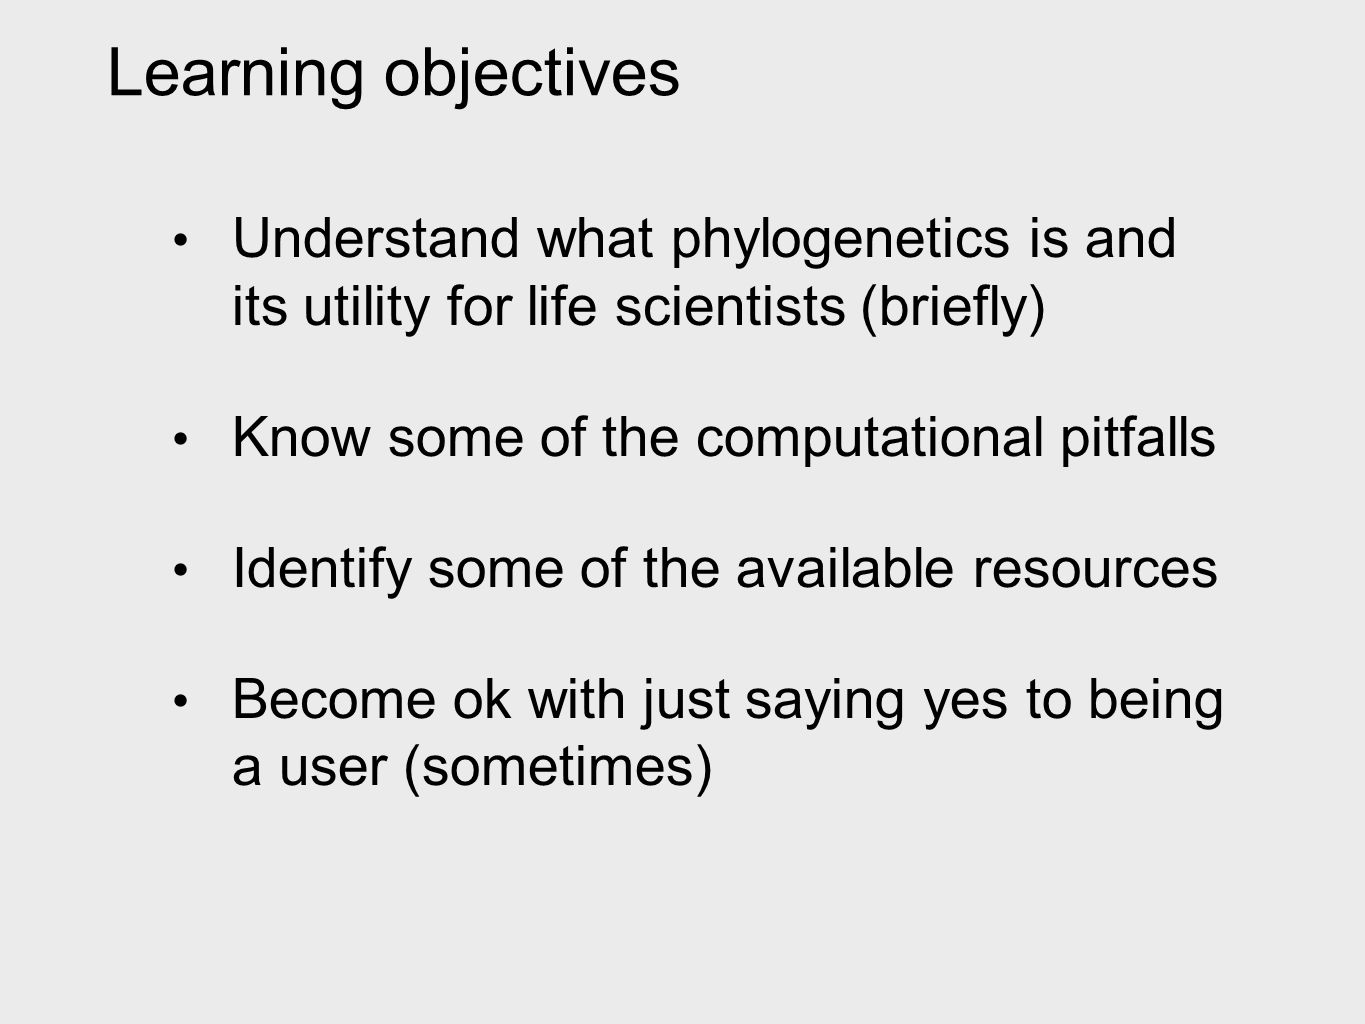 Understand what phylogenetics is and its utility for life scientists (briefly) Know some of the computational pitfalls Identify some of the available resources Become ok with just saying yes to being a user (sometimes) Learning objectives